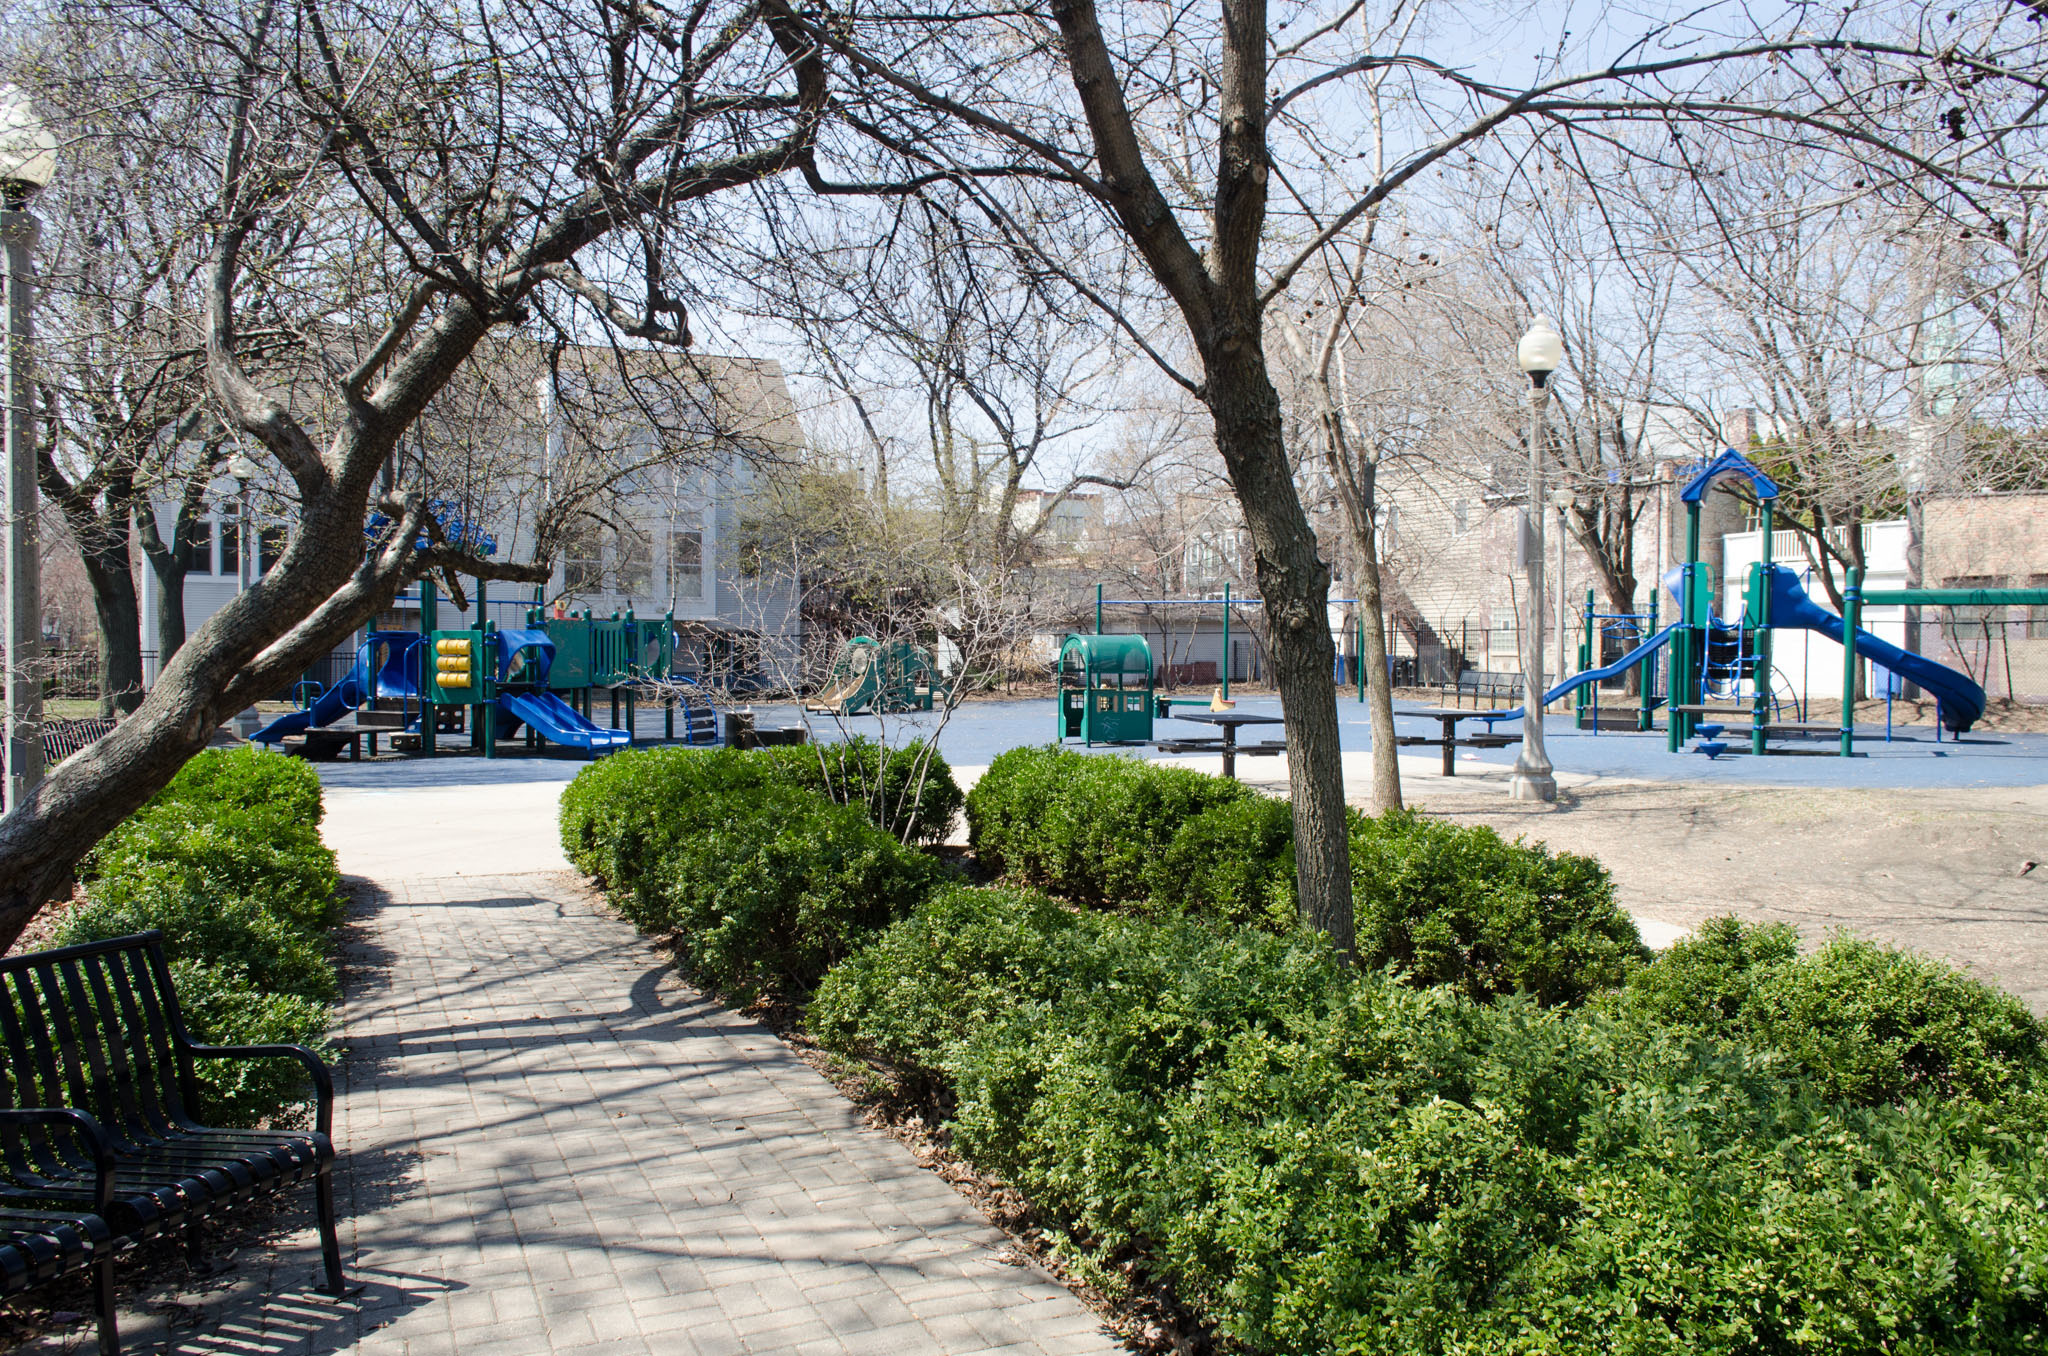 South Lakeview Park